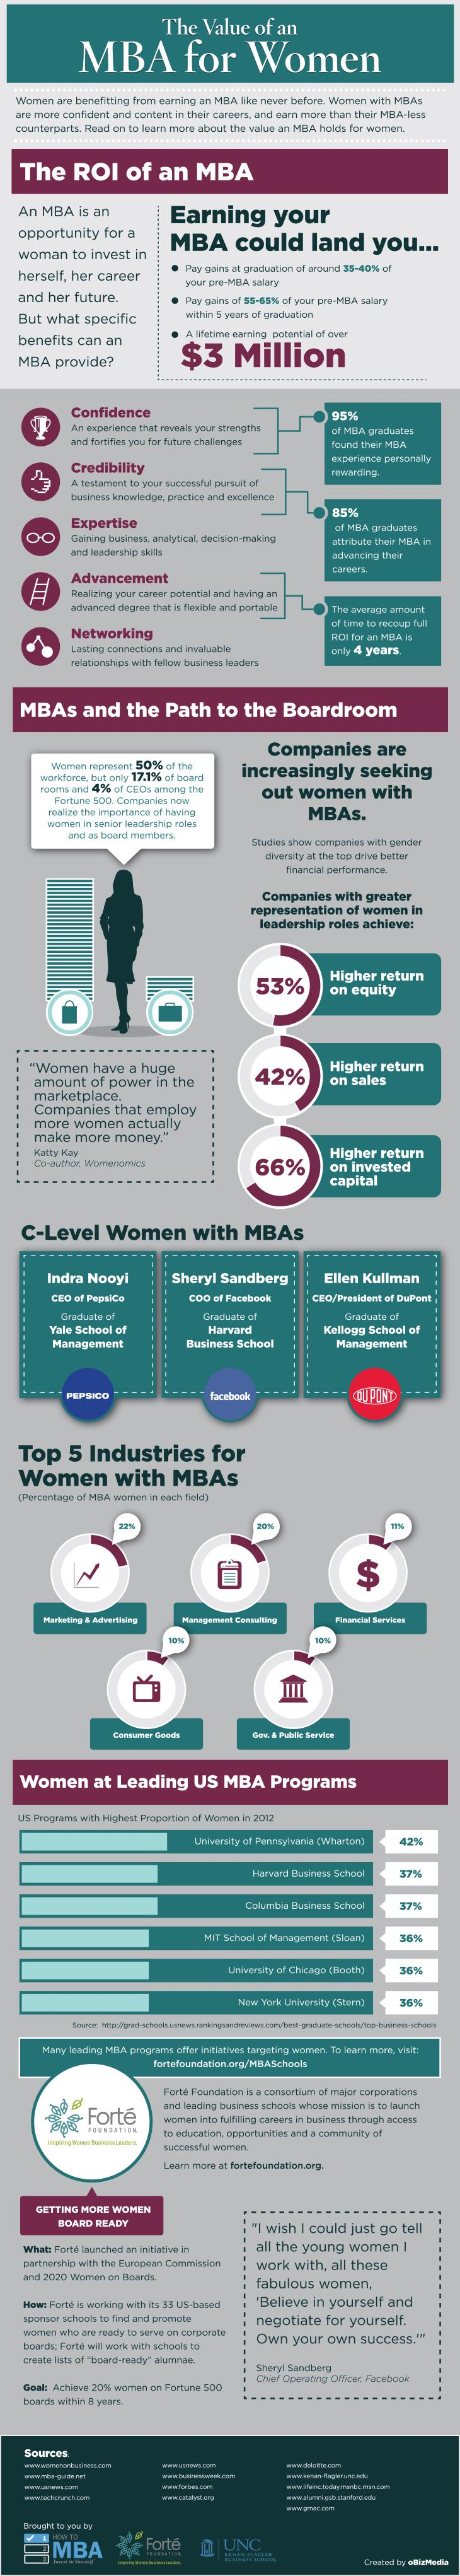 Women In Business At Ivey Mba Ivey Business School